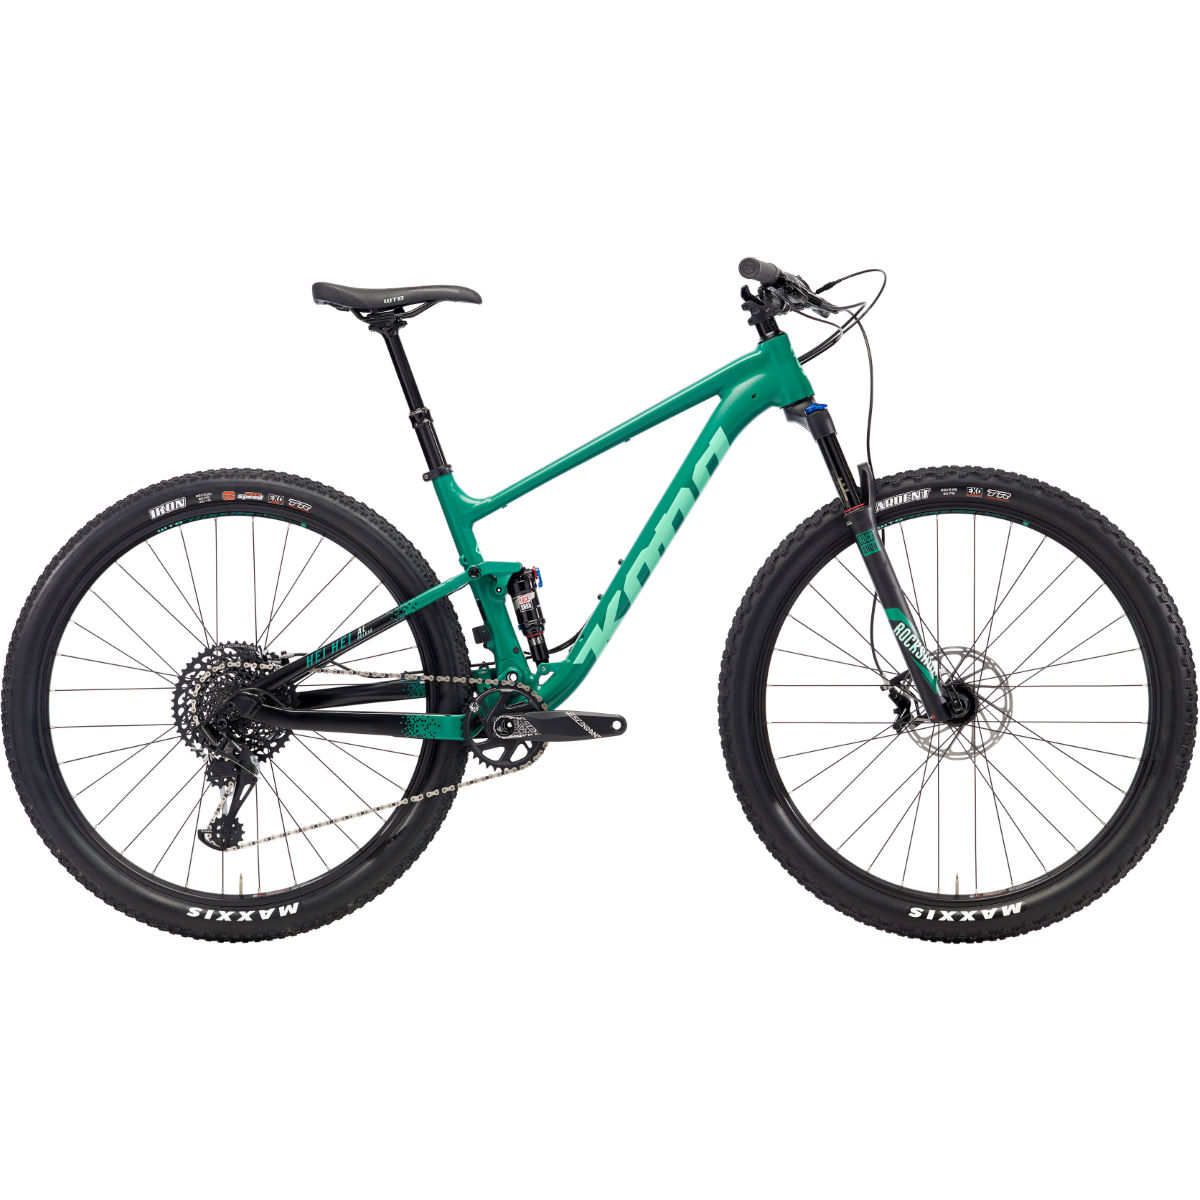 VTT Kona Hei Hei AL/DL (2018) - Medium Stock Bike Vert